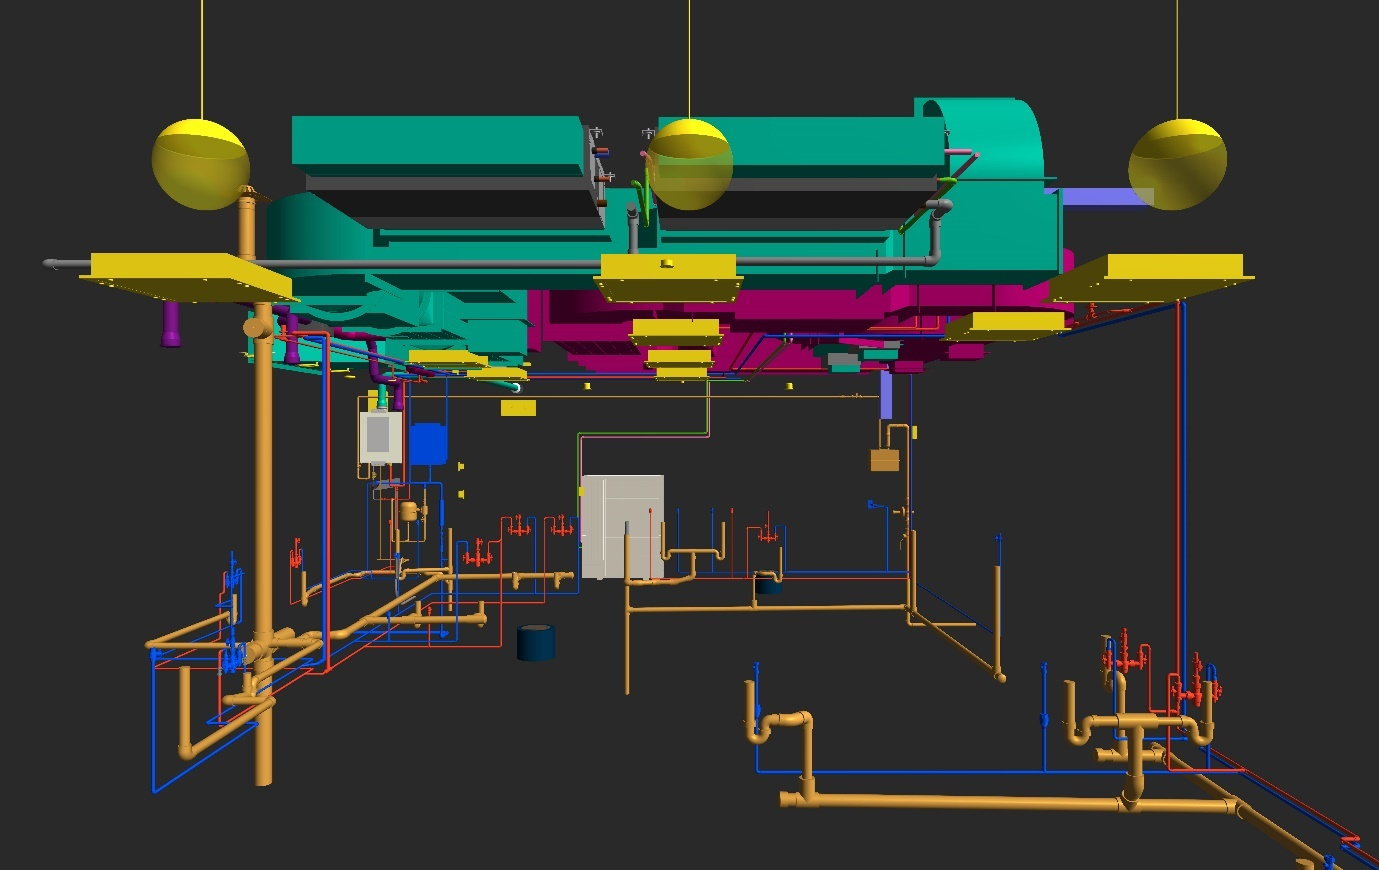 Plumbing and Fire Protection services of Dukes Court Restaurant 3D Model in AutoCAD Revit